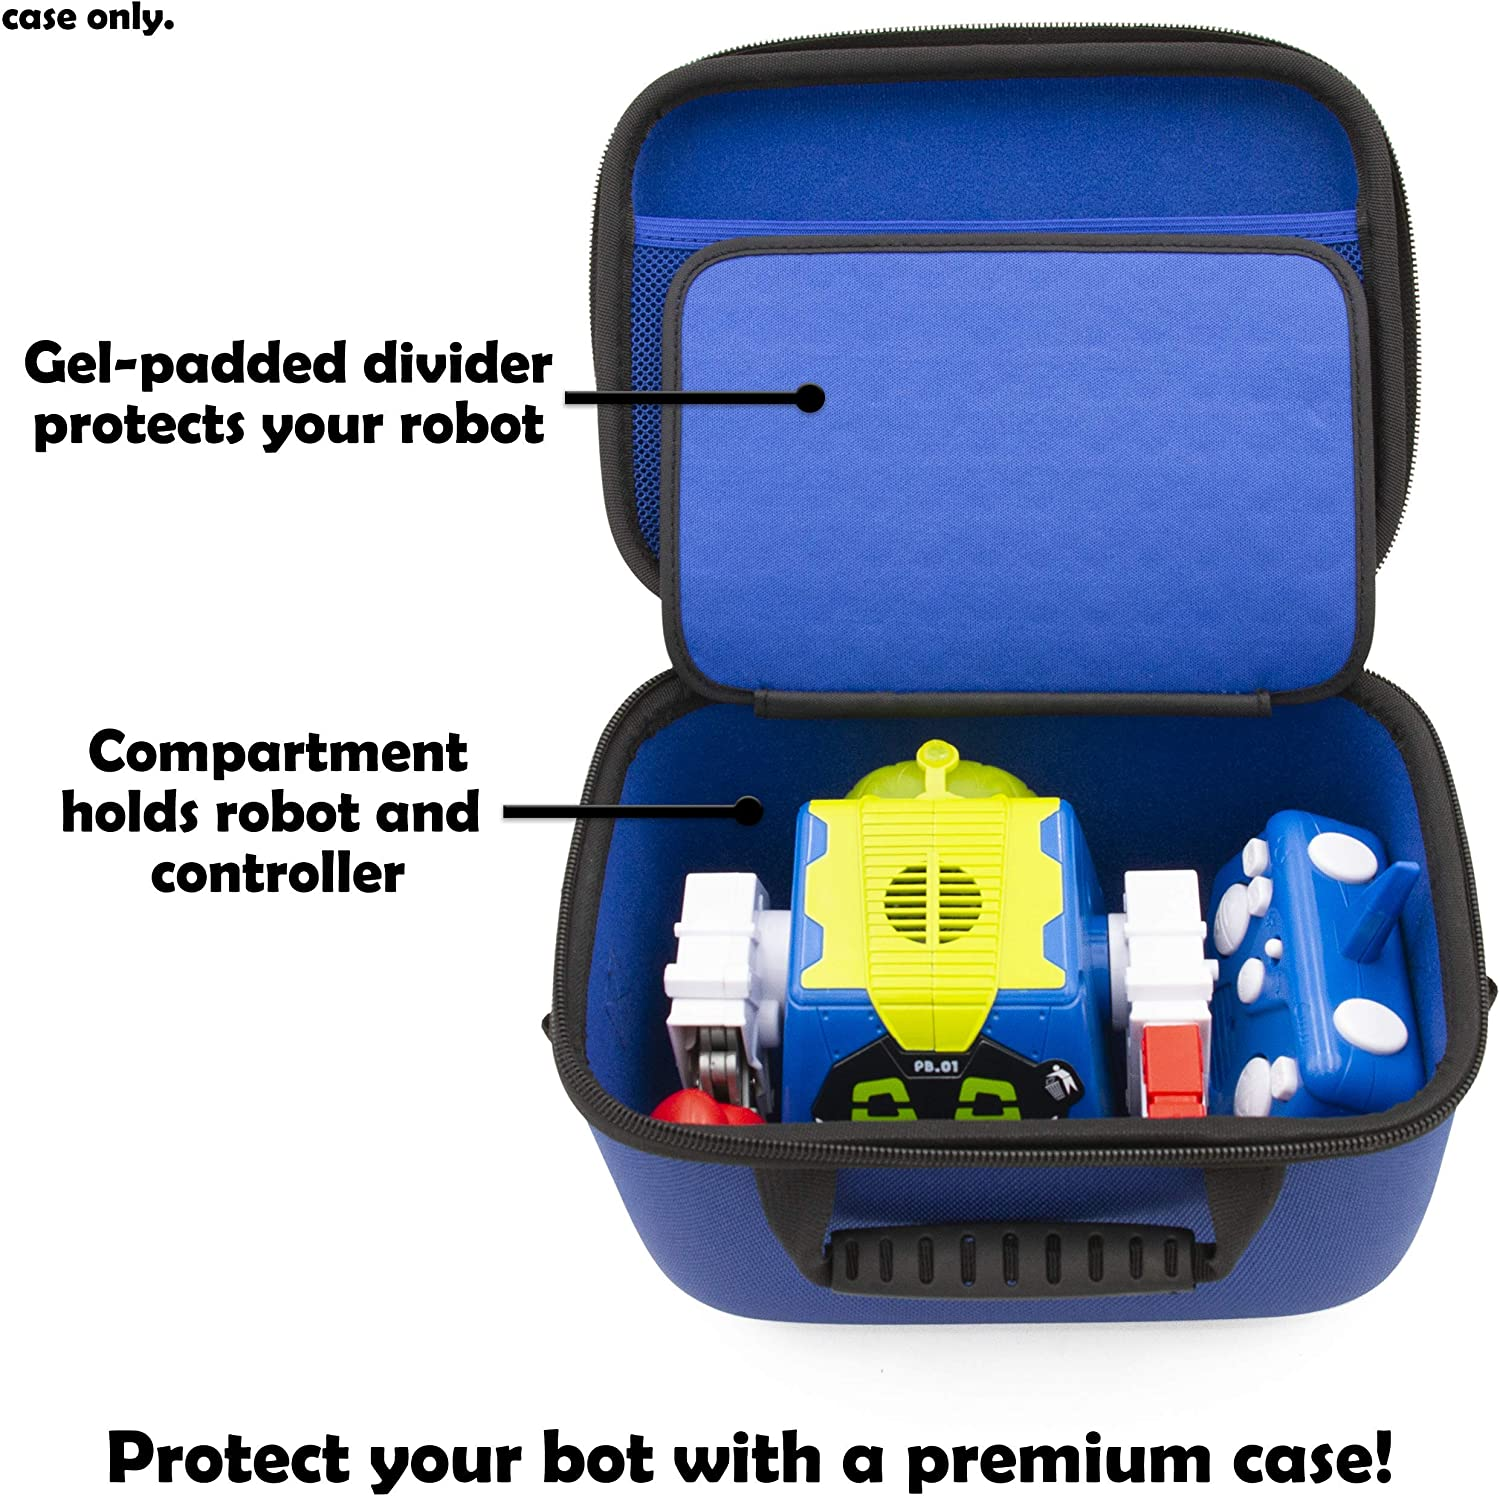 Hard Shell Case with Shoulder Strap and Accessory Storage for Big Robot with Accessories CASE ONLY CASEMATIX Travel Case Compatible with Really Rad Robots Prankbro RC Robot Toy and Controller